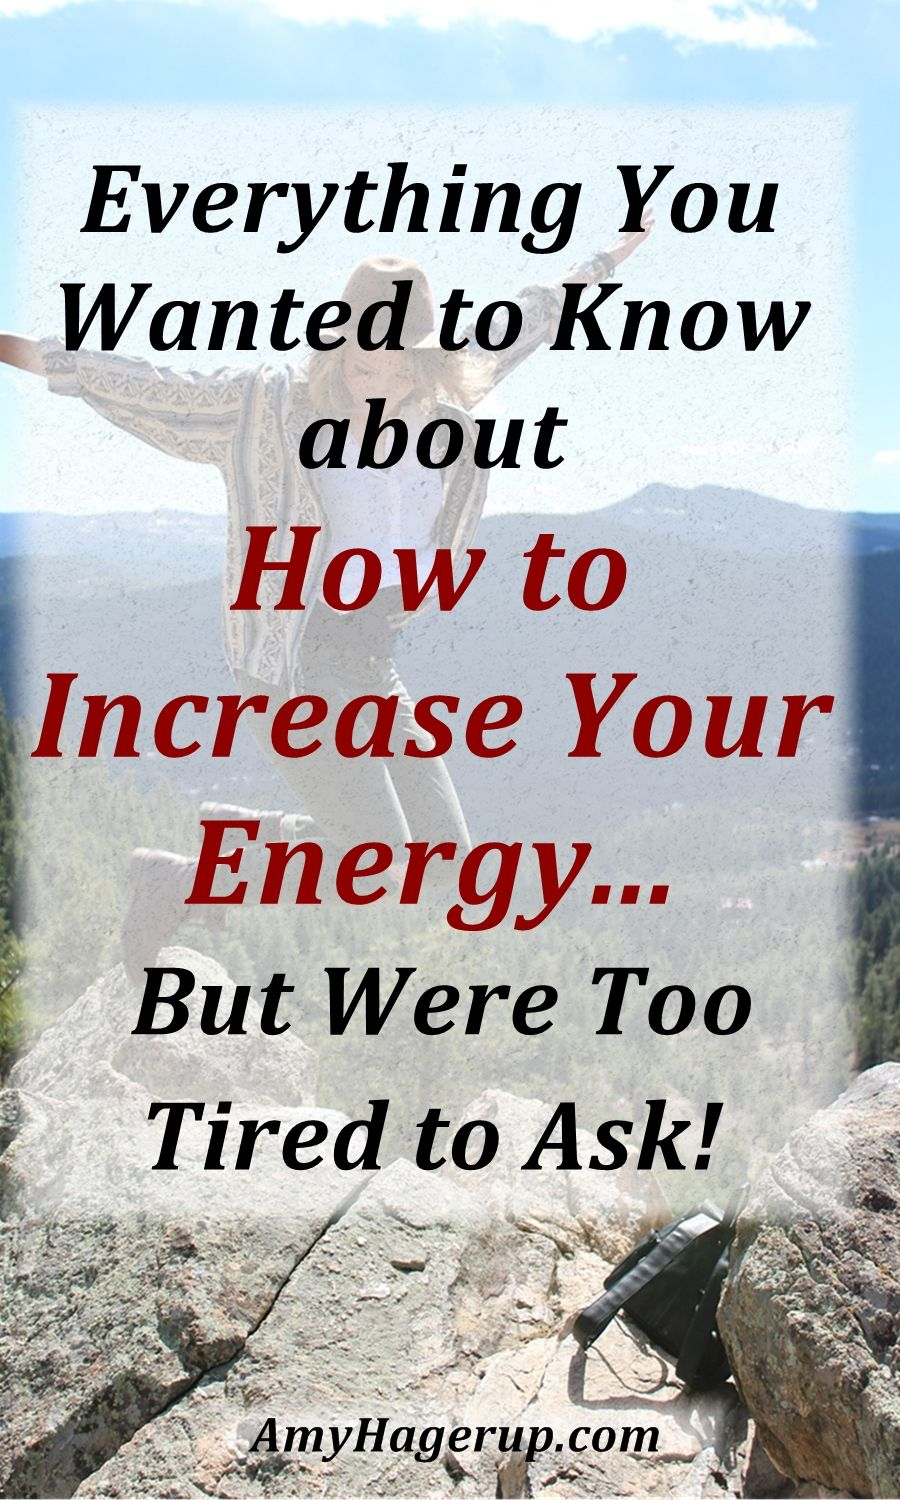 Learn how to increase your energy! Visit http://amyhagerup.com/increase-your-energy/